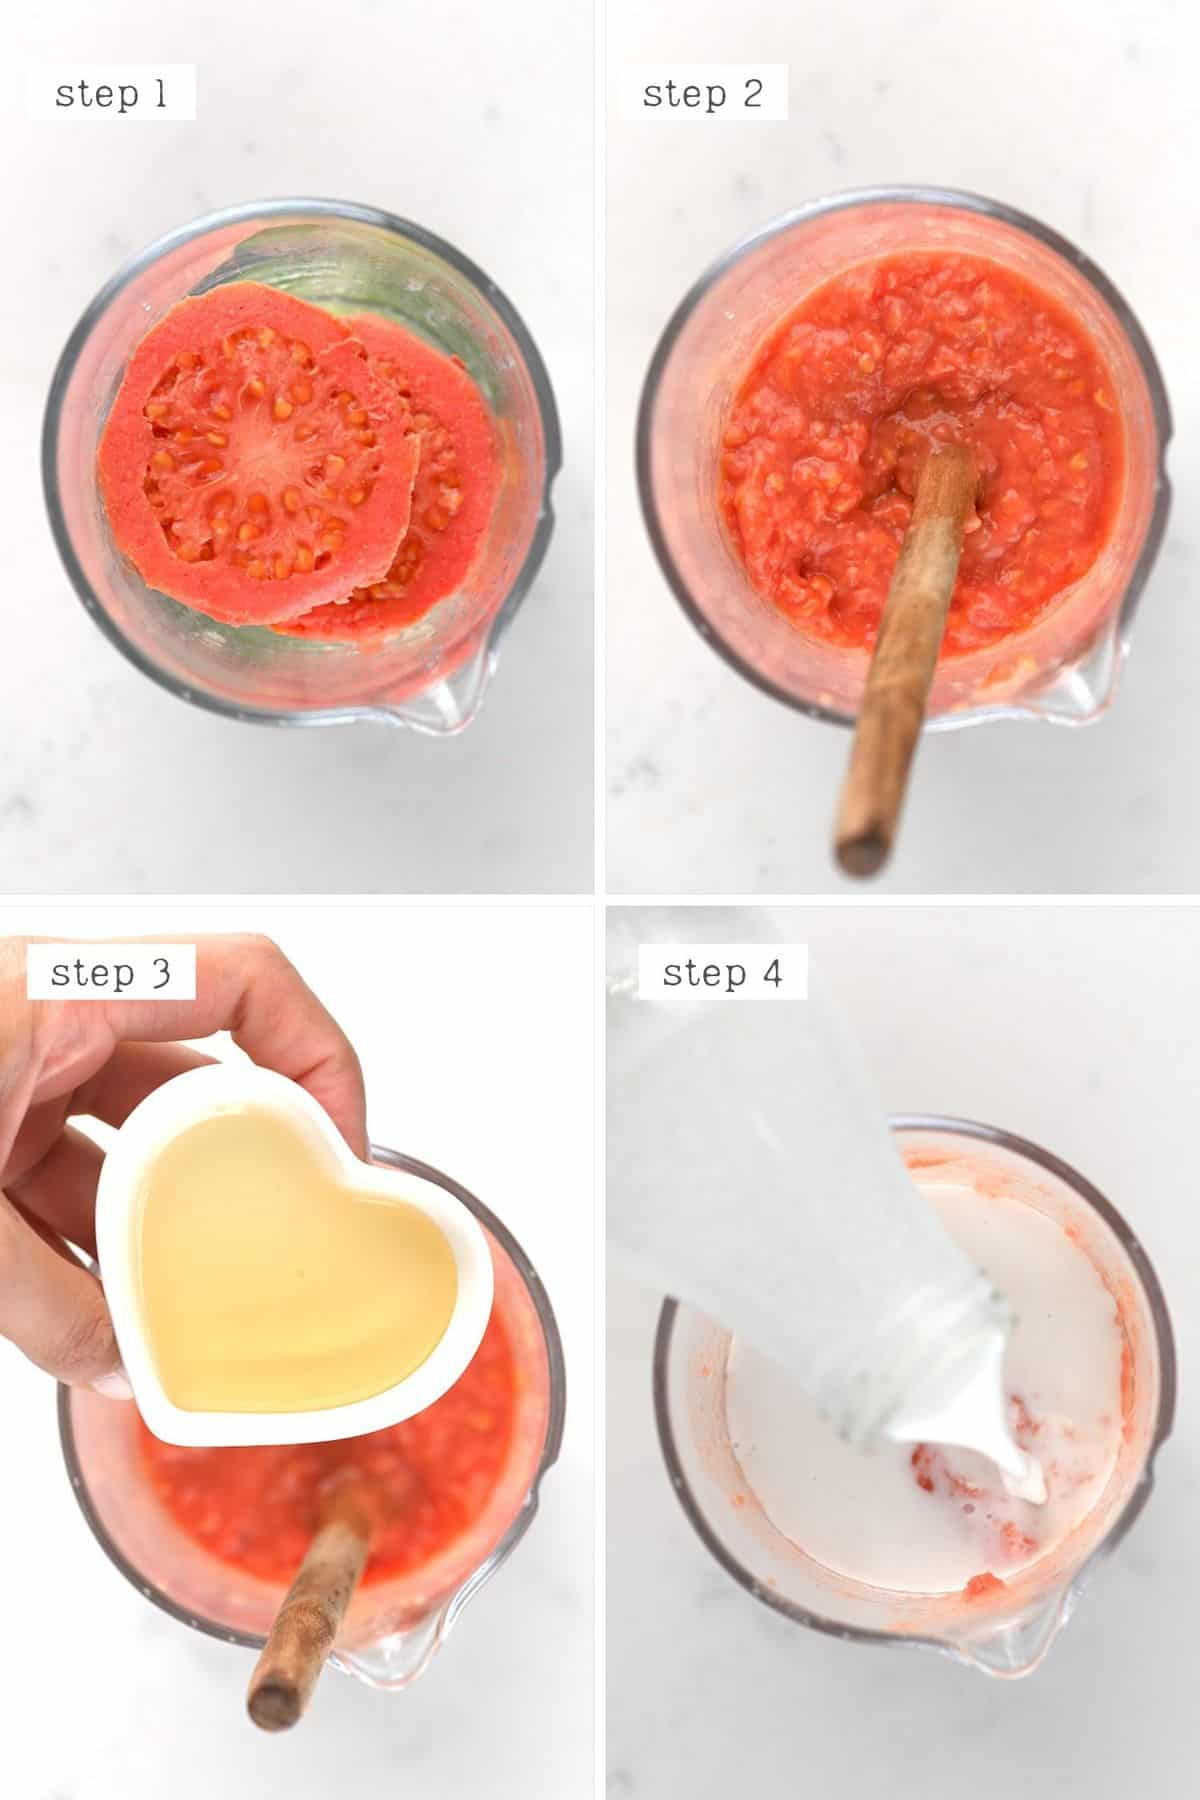 Steps for making a Guava cocktail